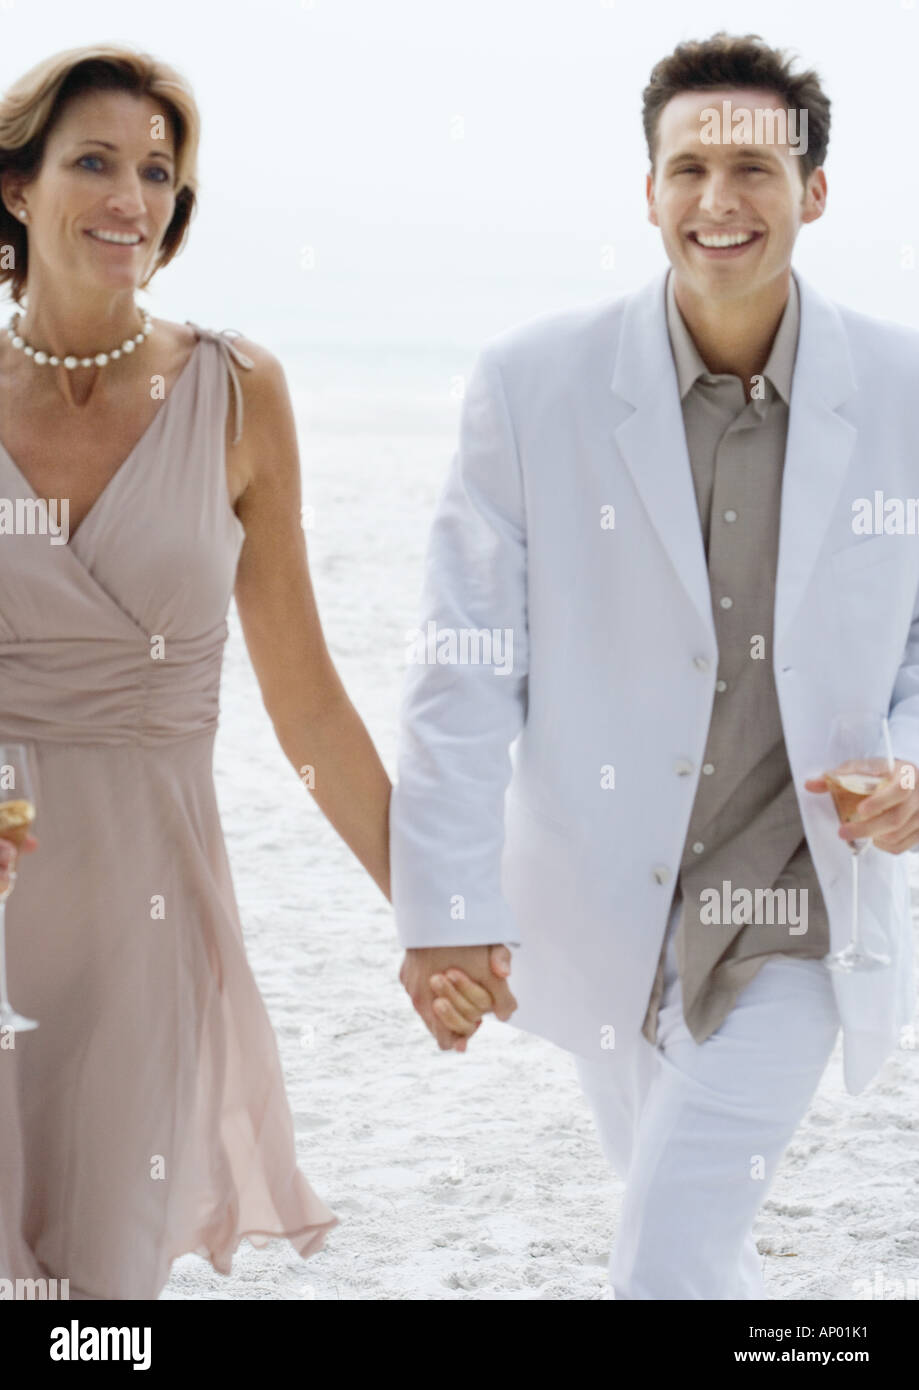 Couple in formalwear on beach - Stock Image